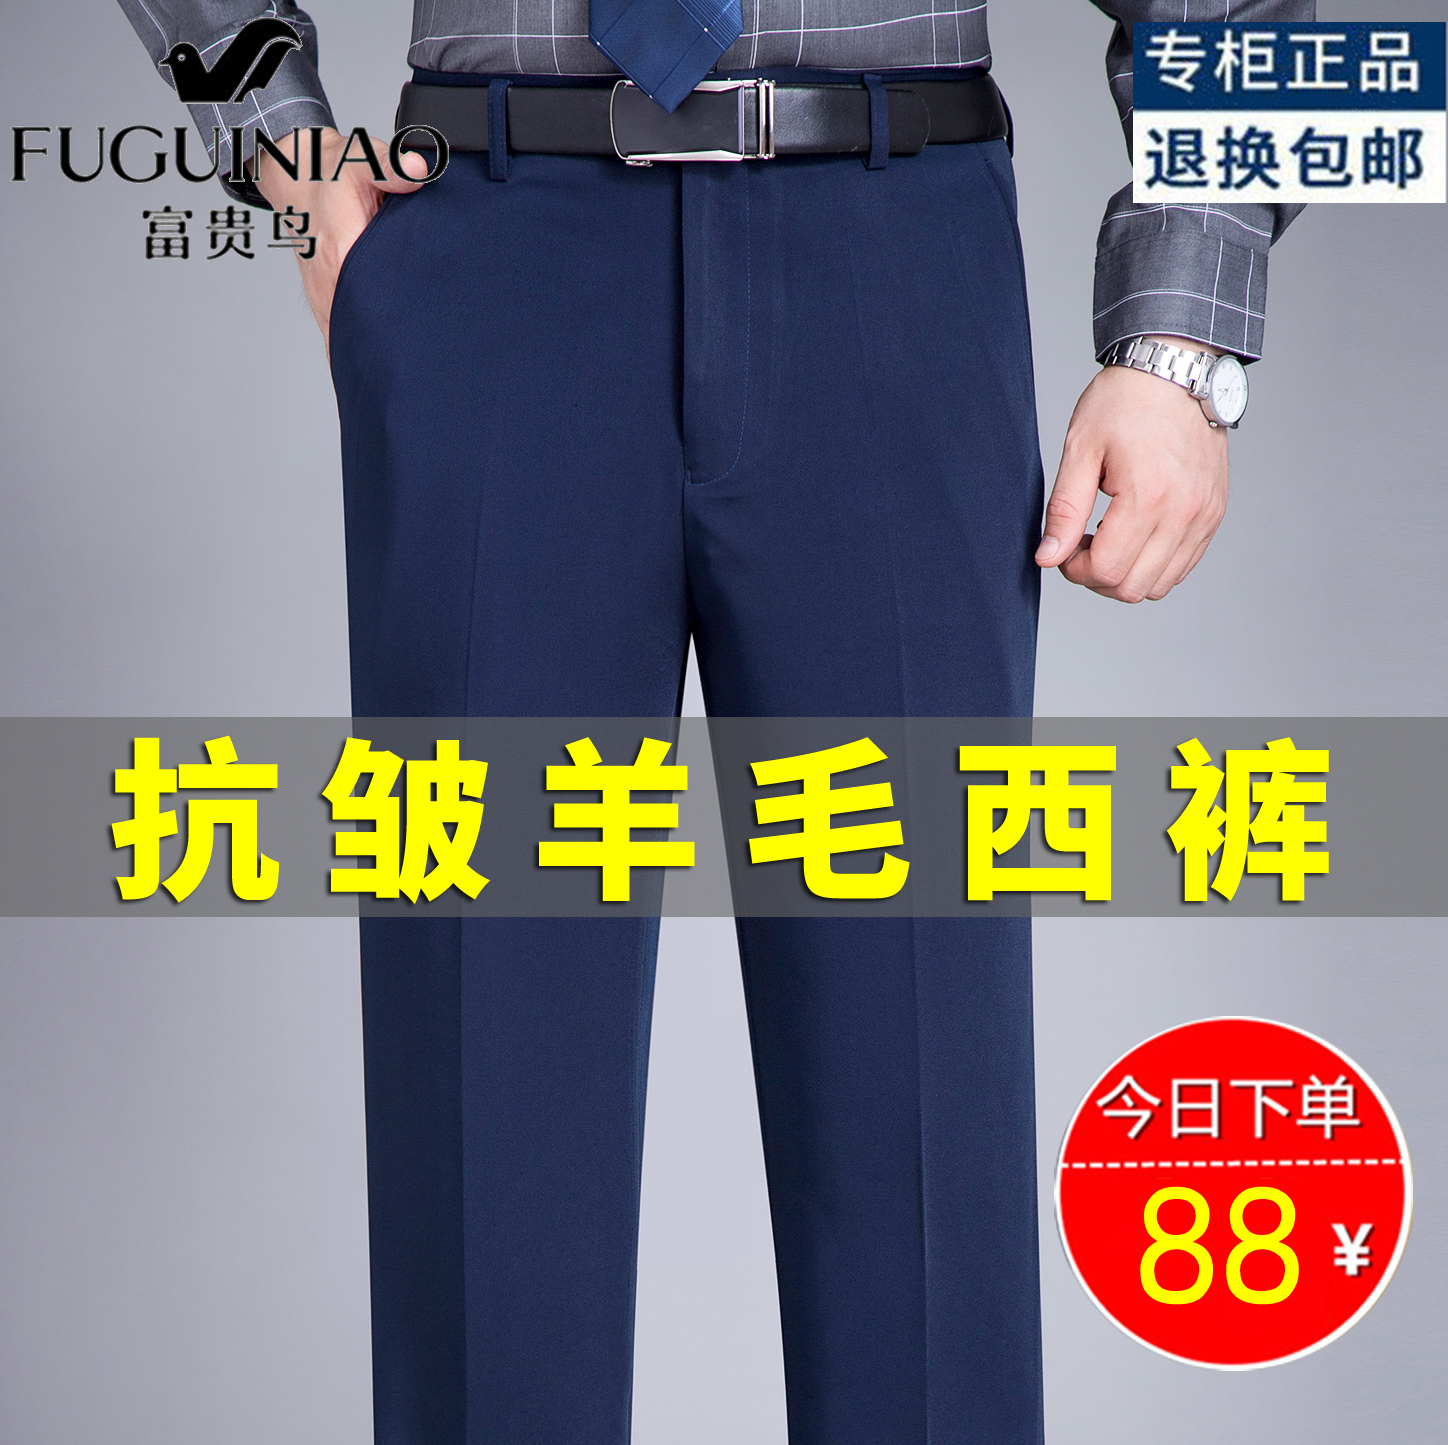 Playboy autumn and winter mens trousers middle aged wool plus Plush business dress straight tube loose suit trousers for work